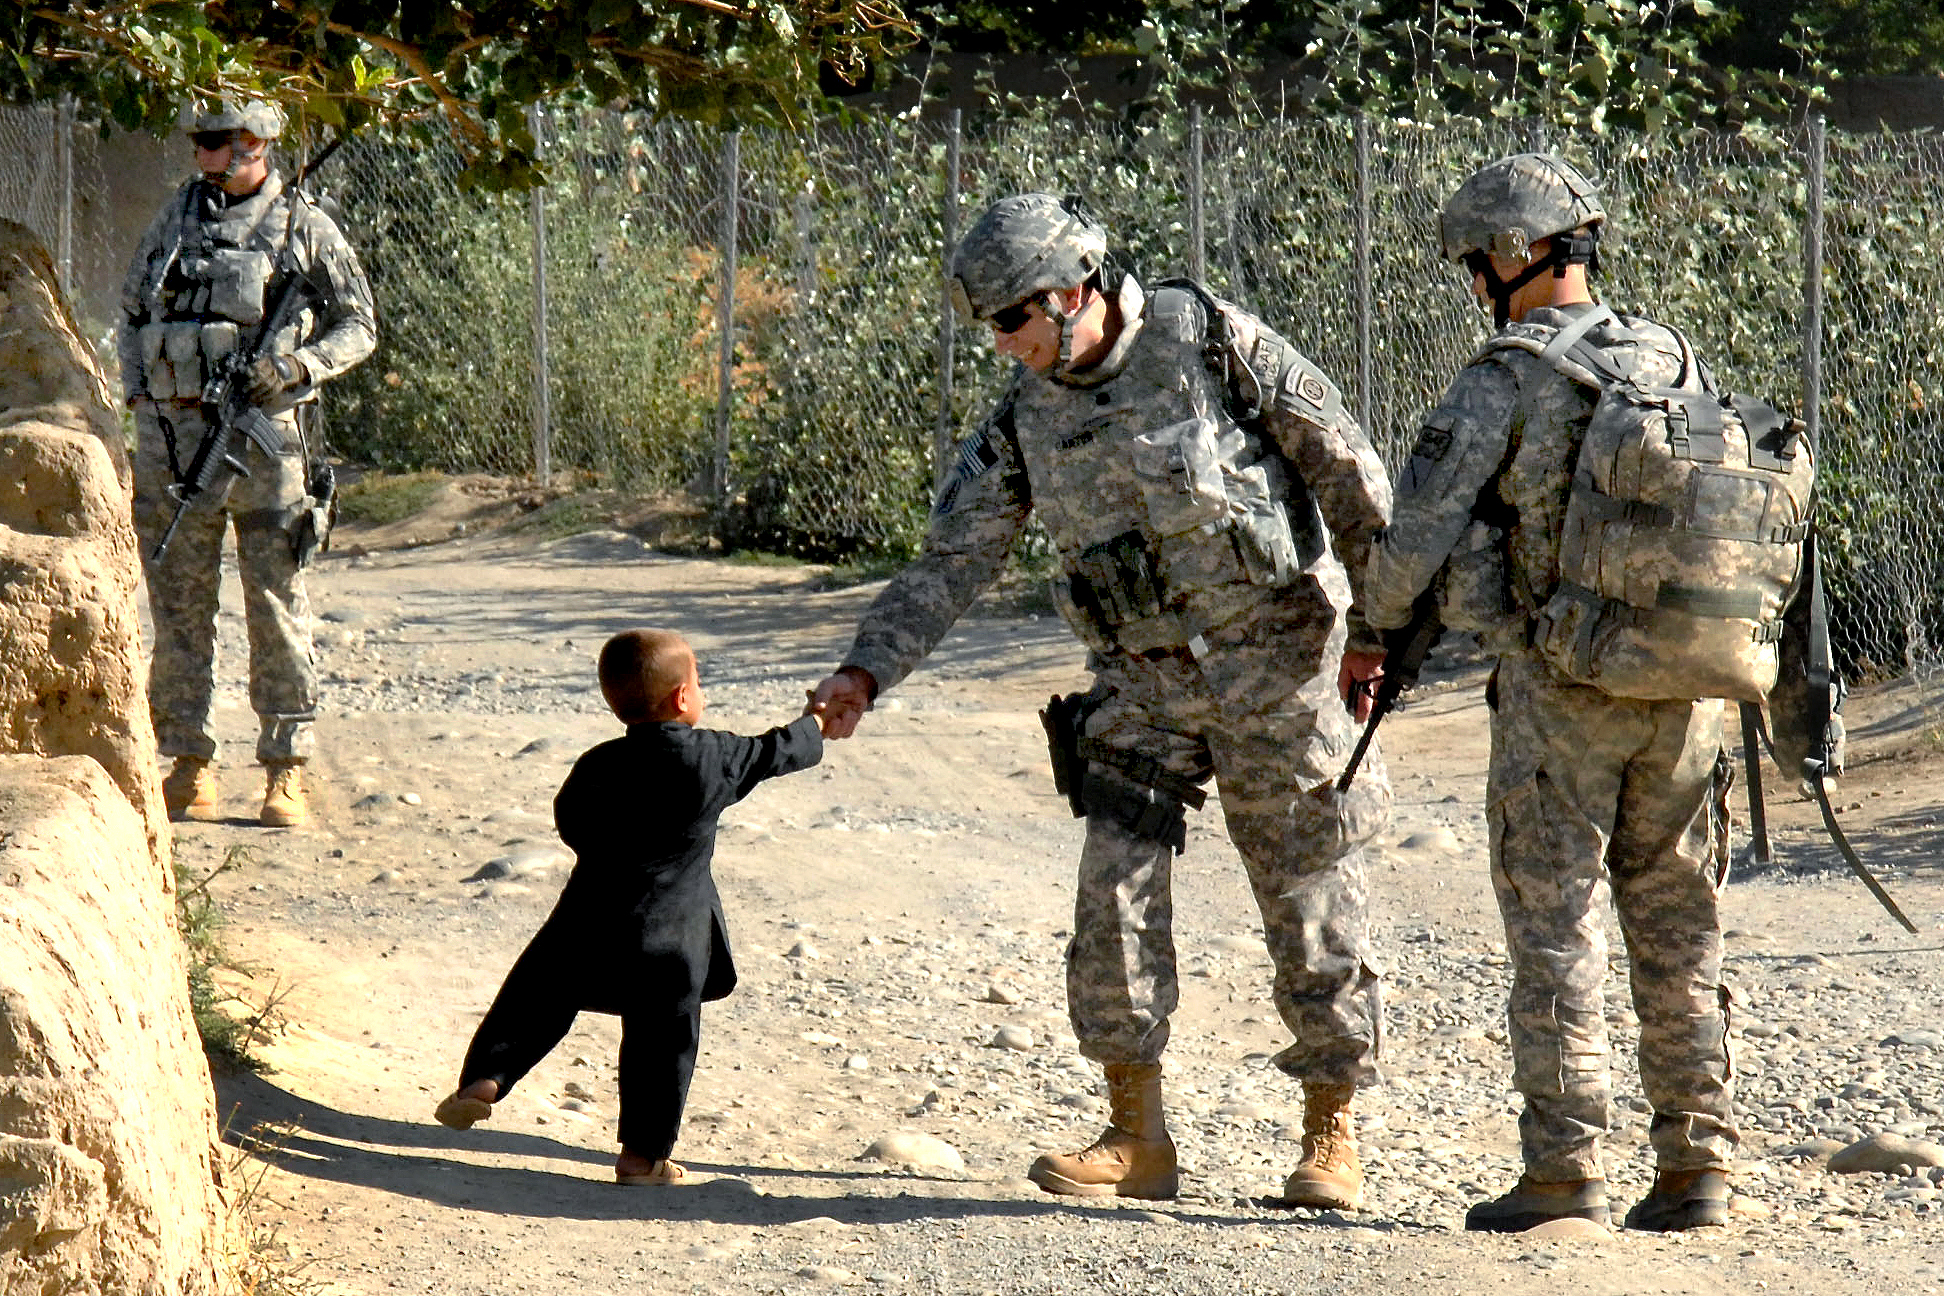 Description flickr the u s army handshakes in afghanistan